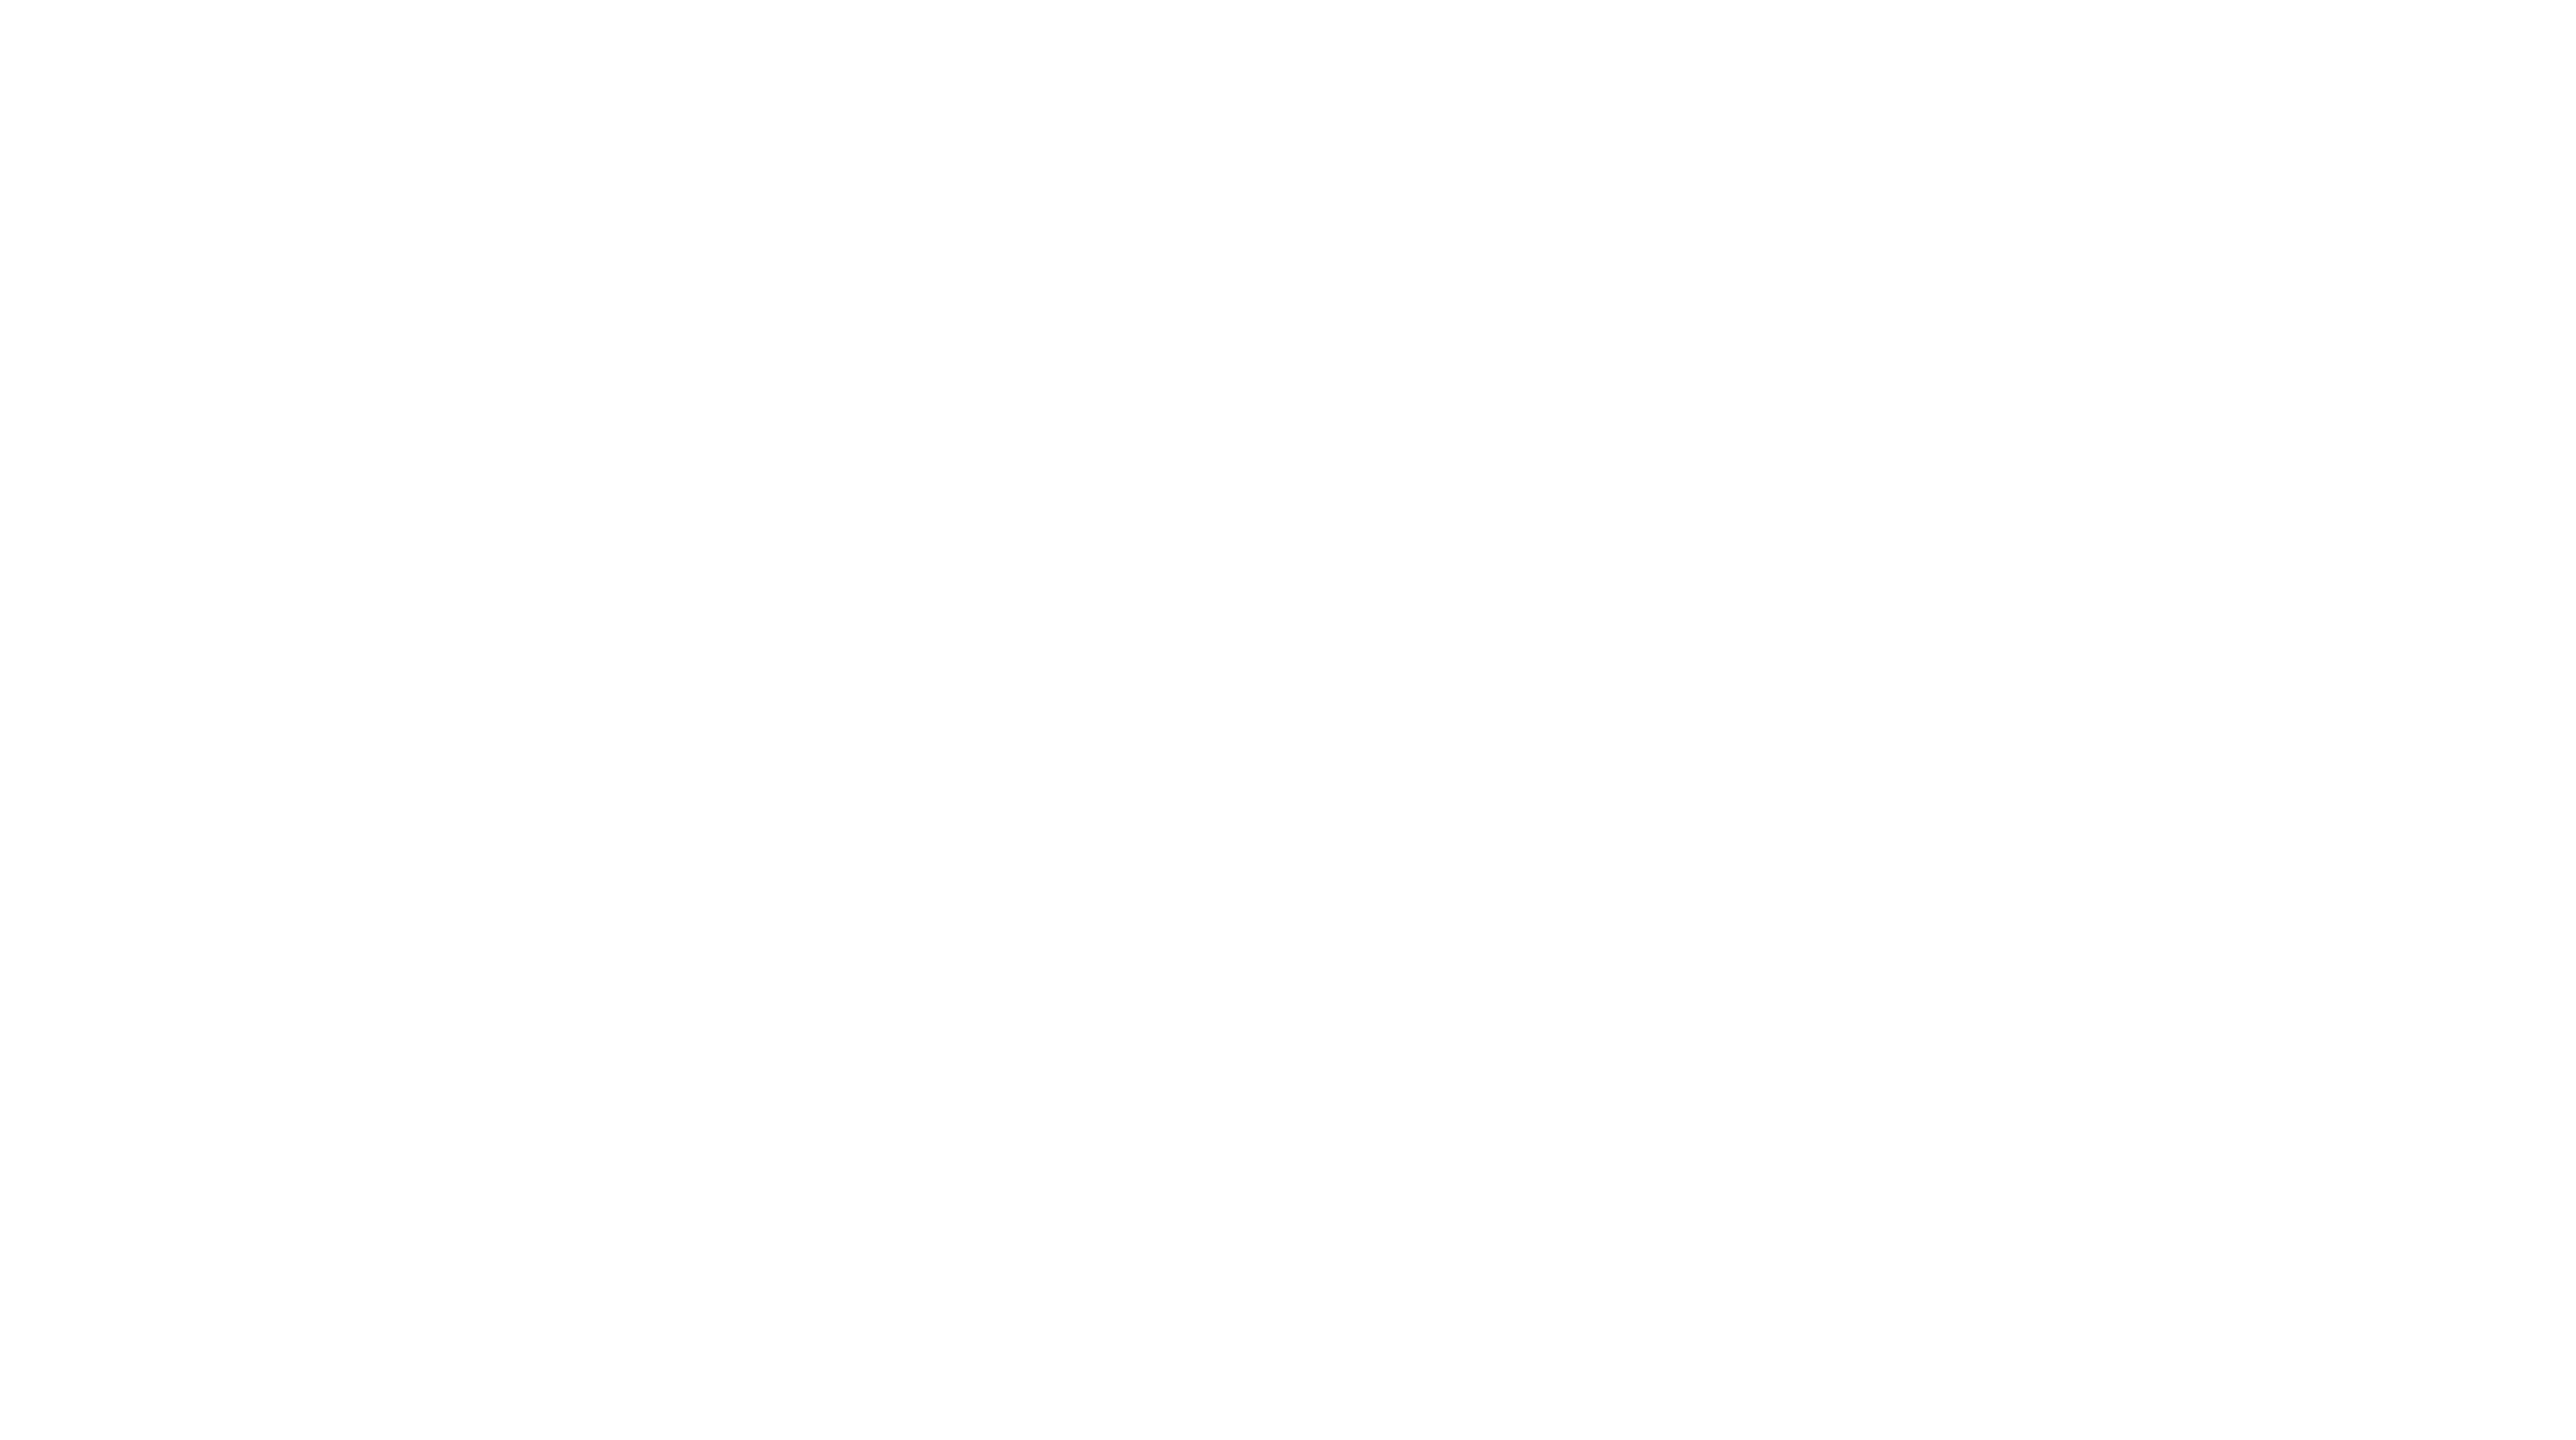 EIC logo_together we innovate_white